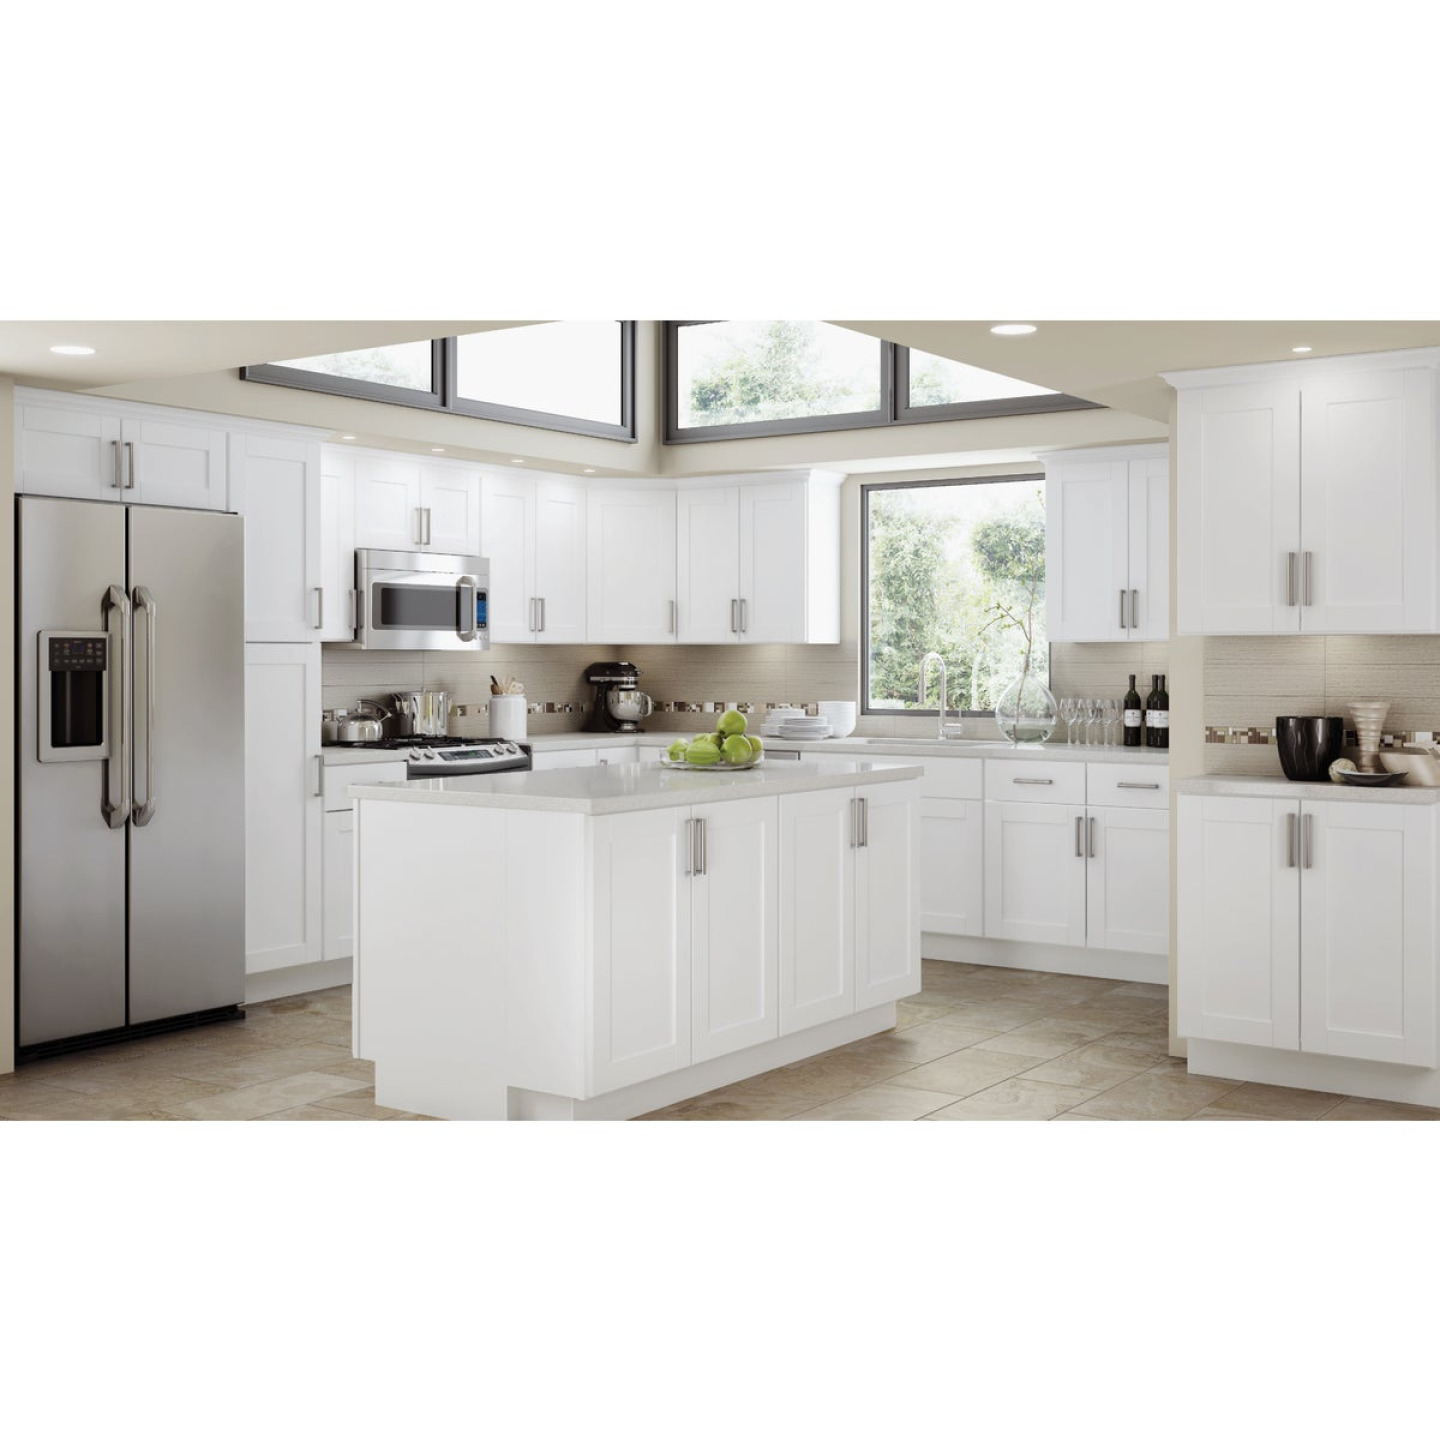 Continental Cabinets Andover Shaker 18 In. W x 34 In. H x 24 In. D White Thermofoil Base Kitchen Cabinet Image 2